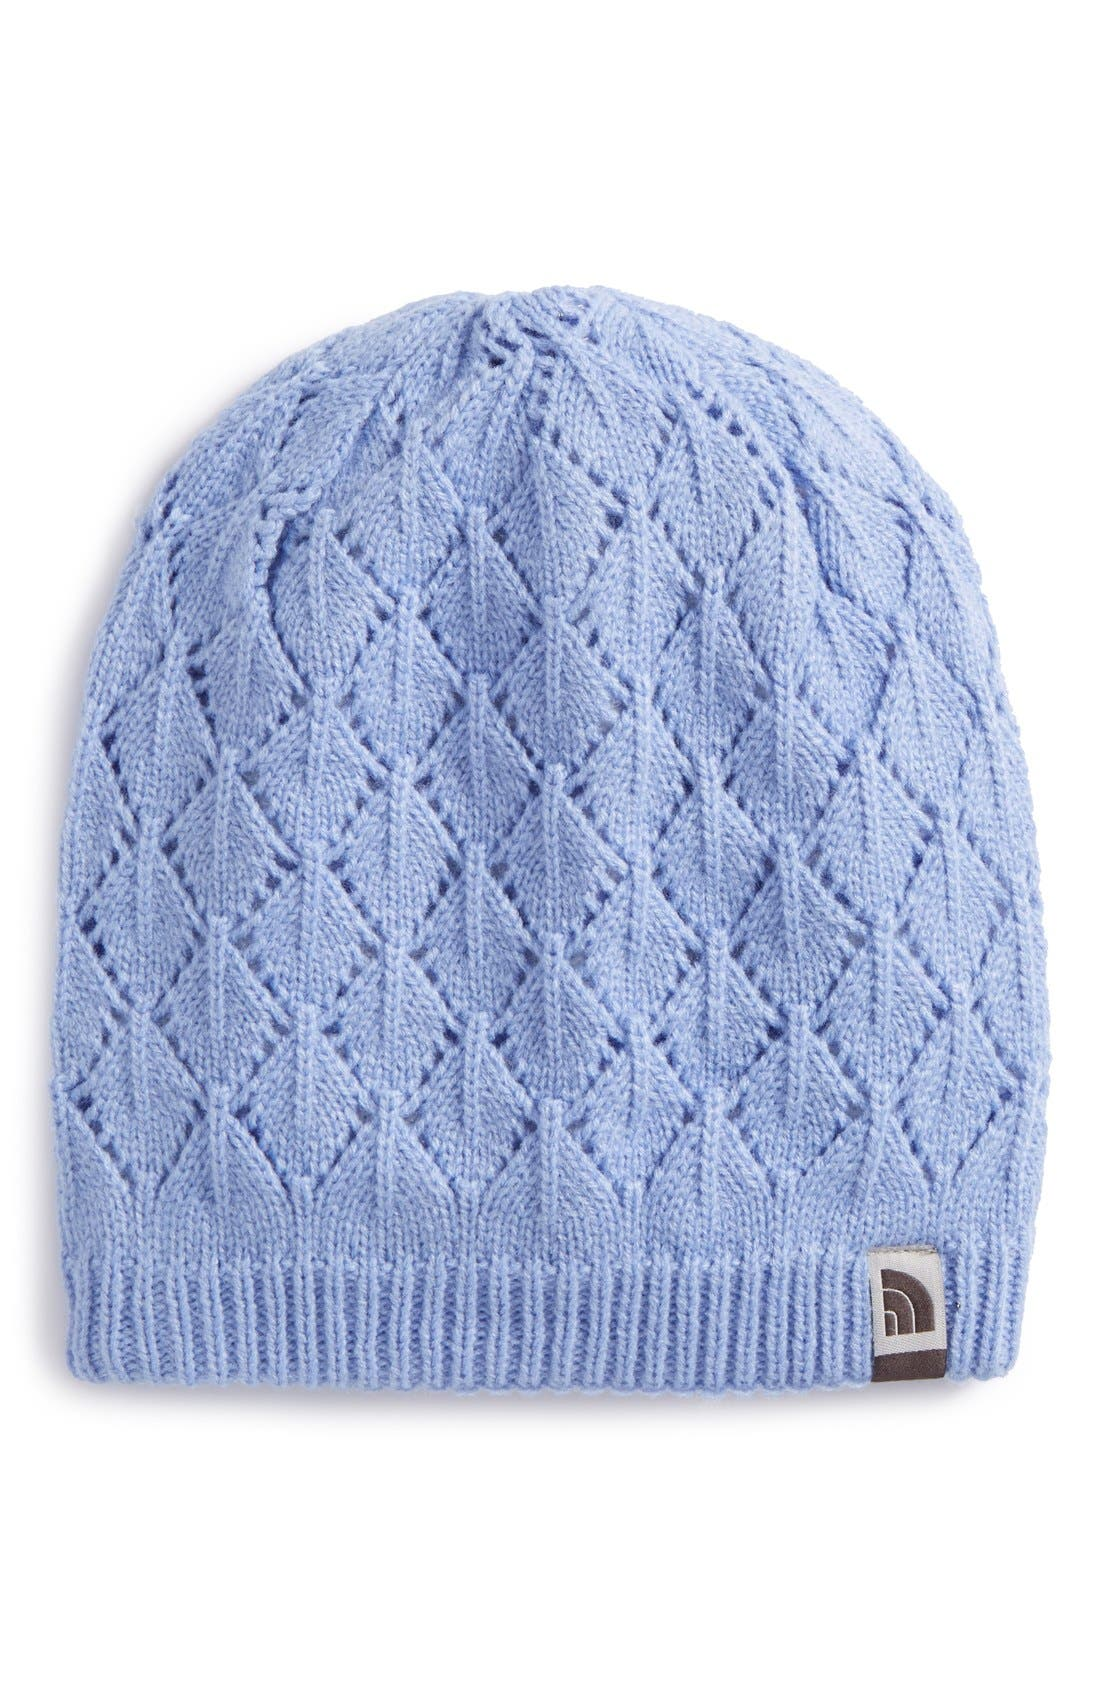 Alternate Image 1 Selected - The North Face 'Shinto' Reversible Beanie (Girls)